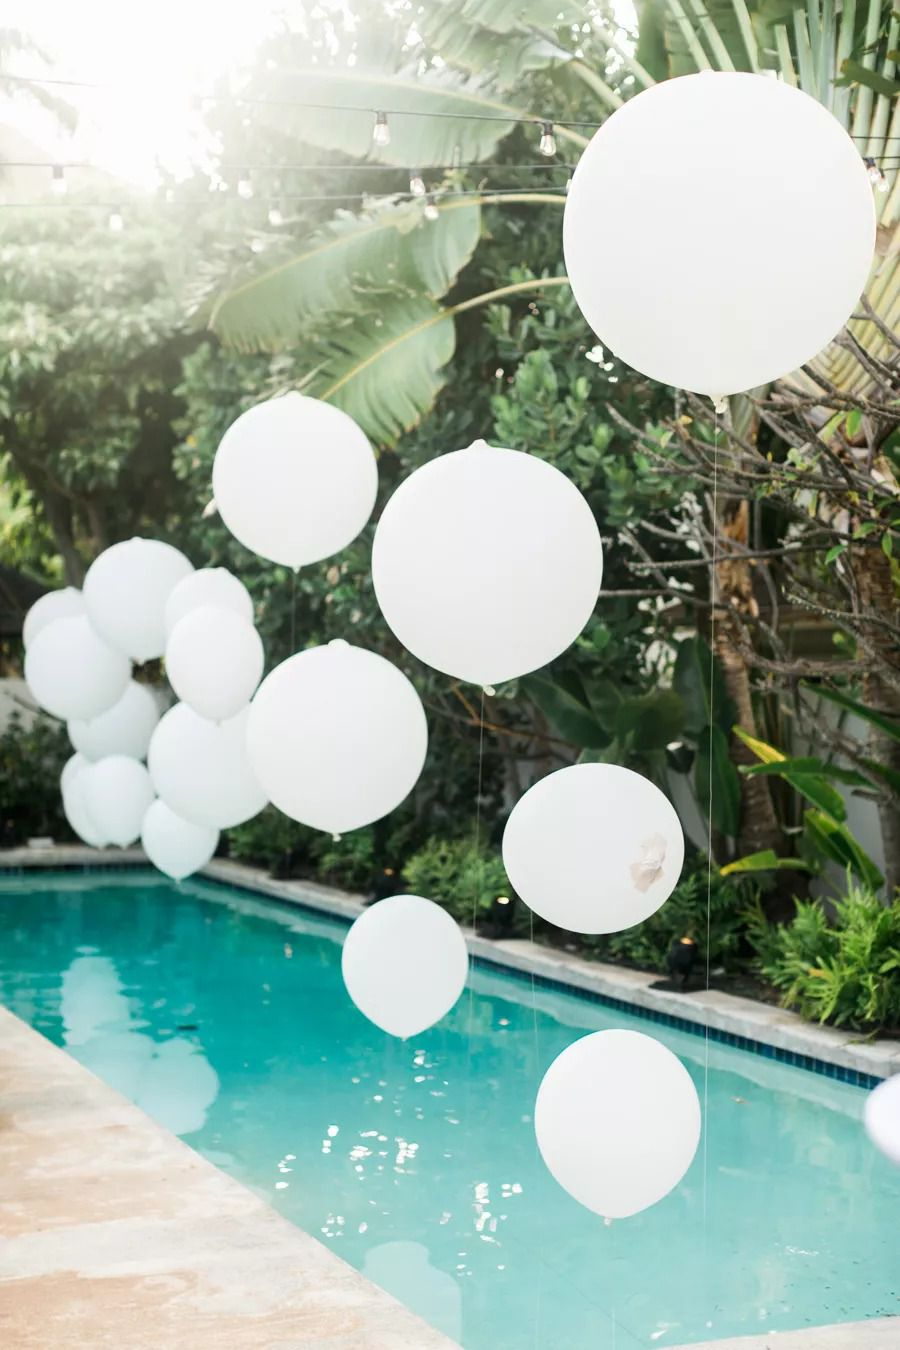 White balloons floating over a pool